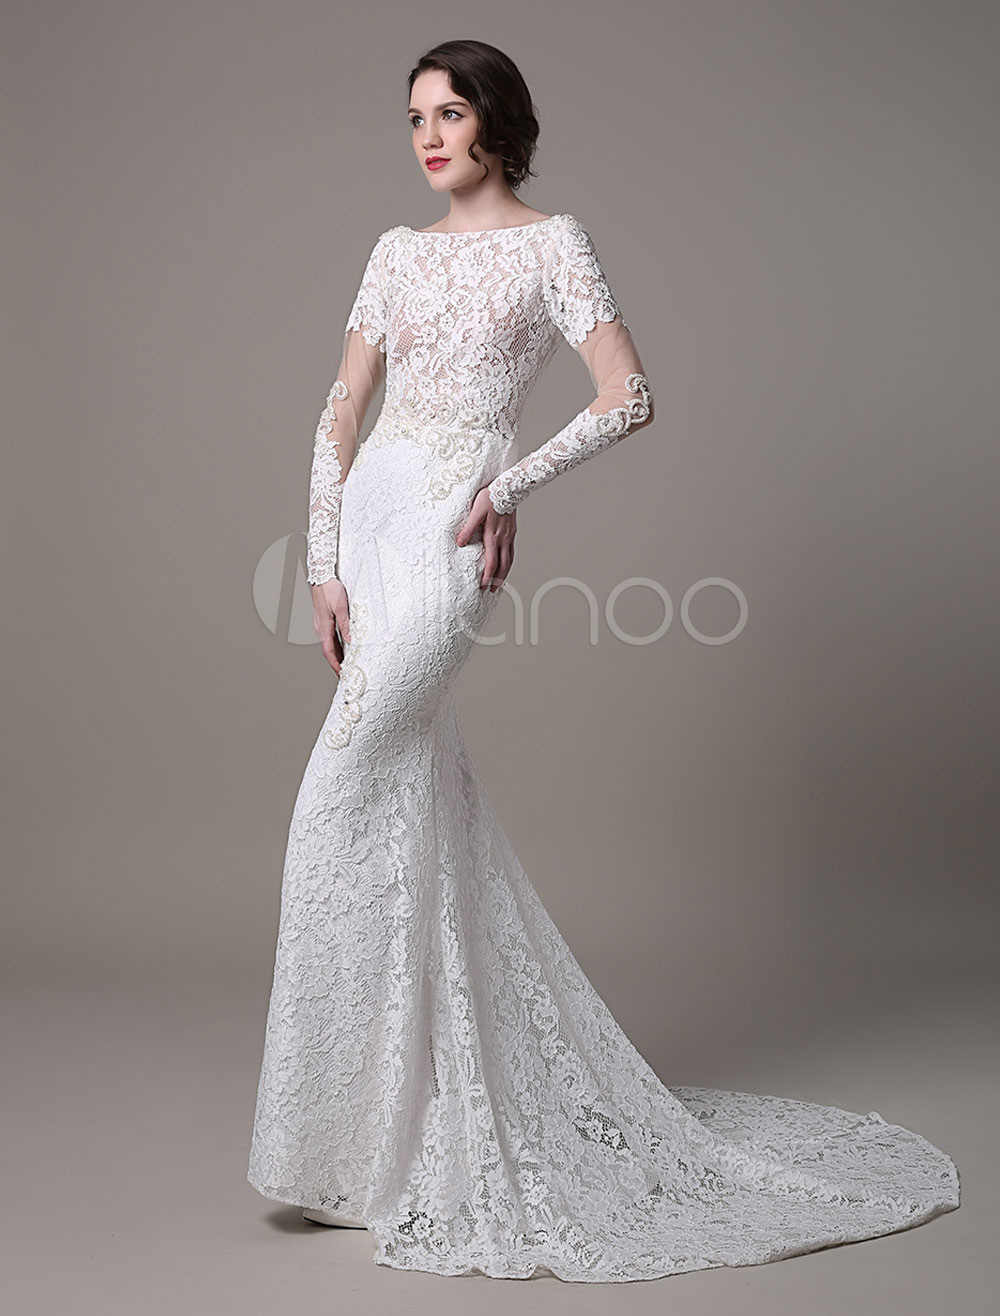 Vintage Lace Wedding Dress With Long Sheer Sleeves And Pearls Applique  Milanoo